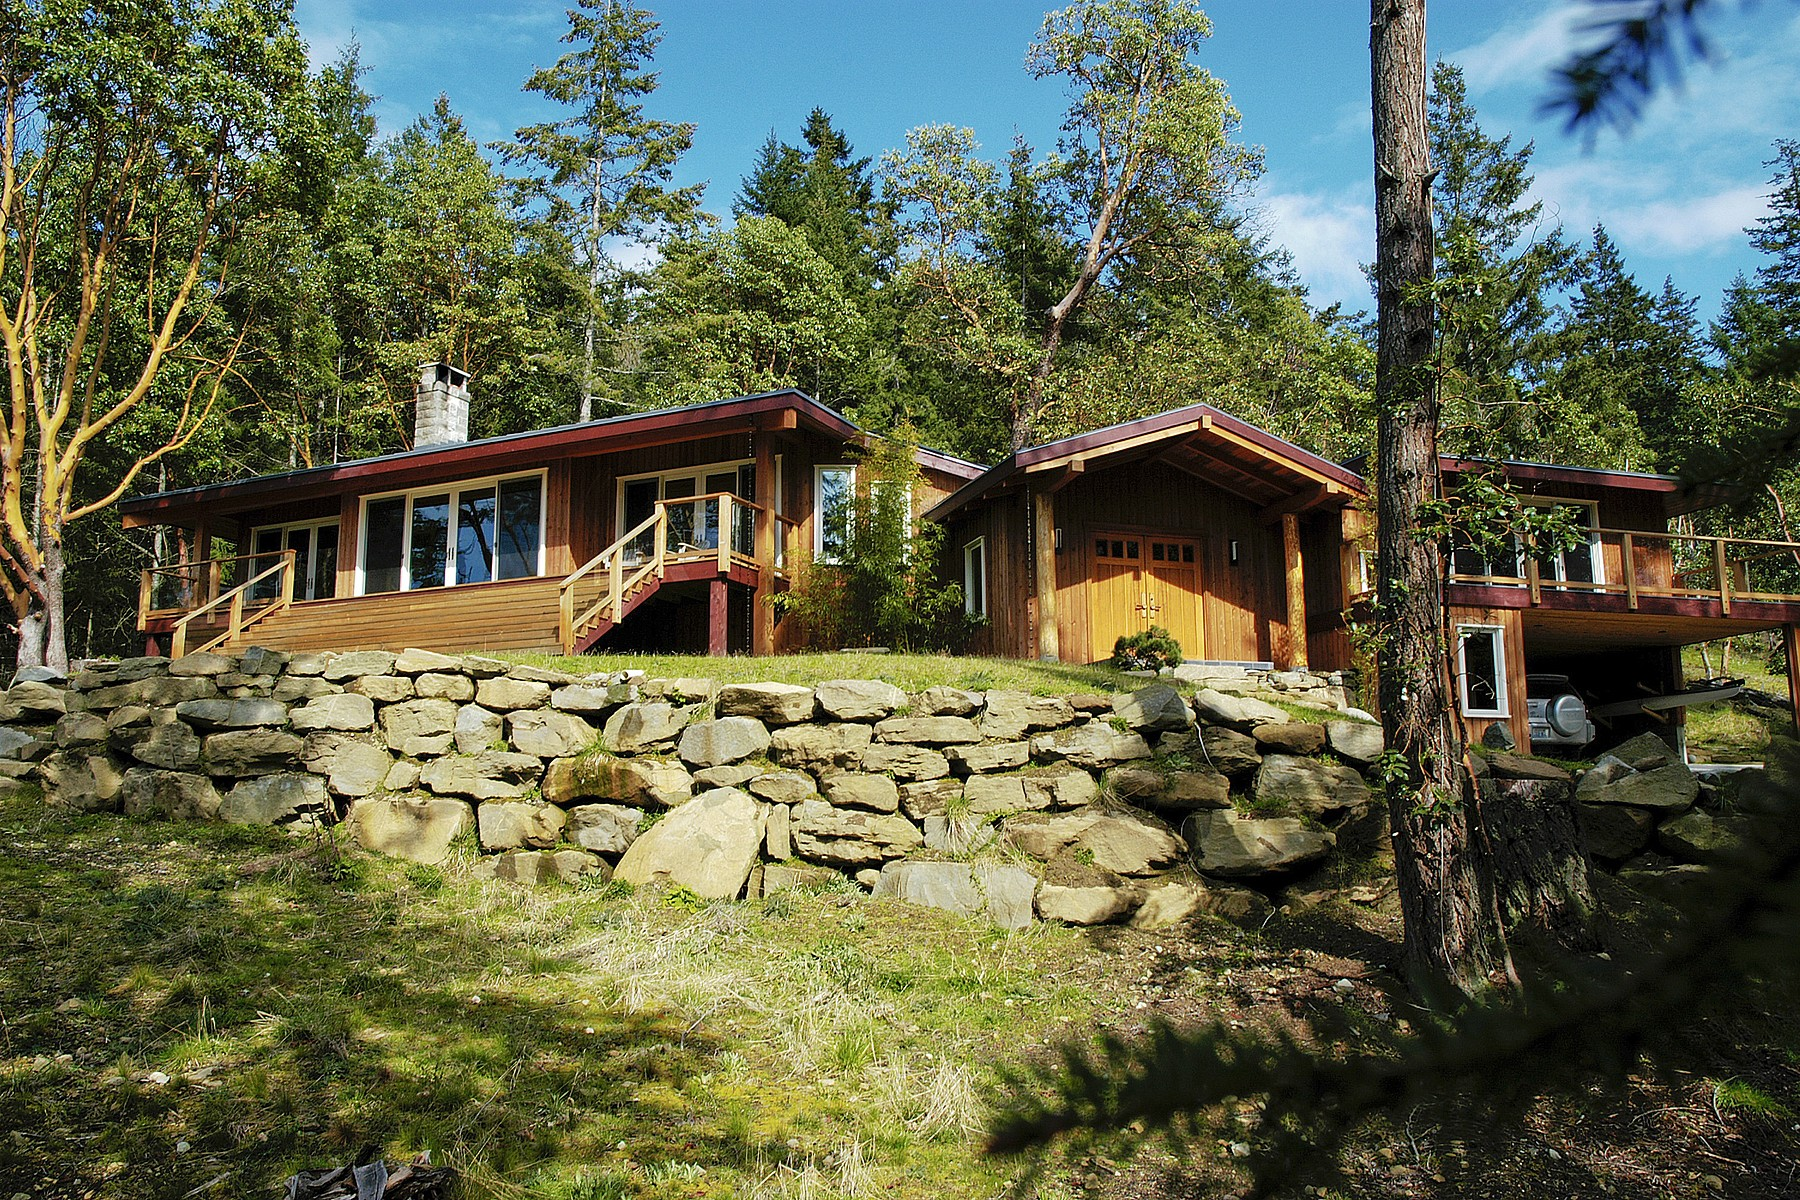 Casa Unifamiliar por un Venta en Pure Design - Outstanding Views 203 Pringle Farm Road, Salt Spring Island, British Columbia, V8K 2Y2 Canadá